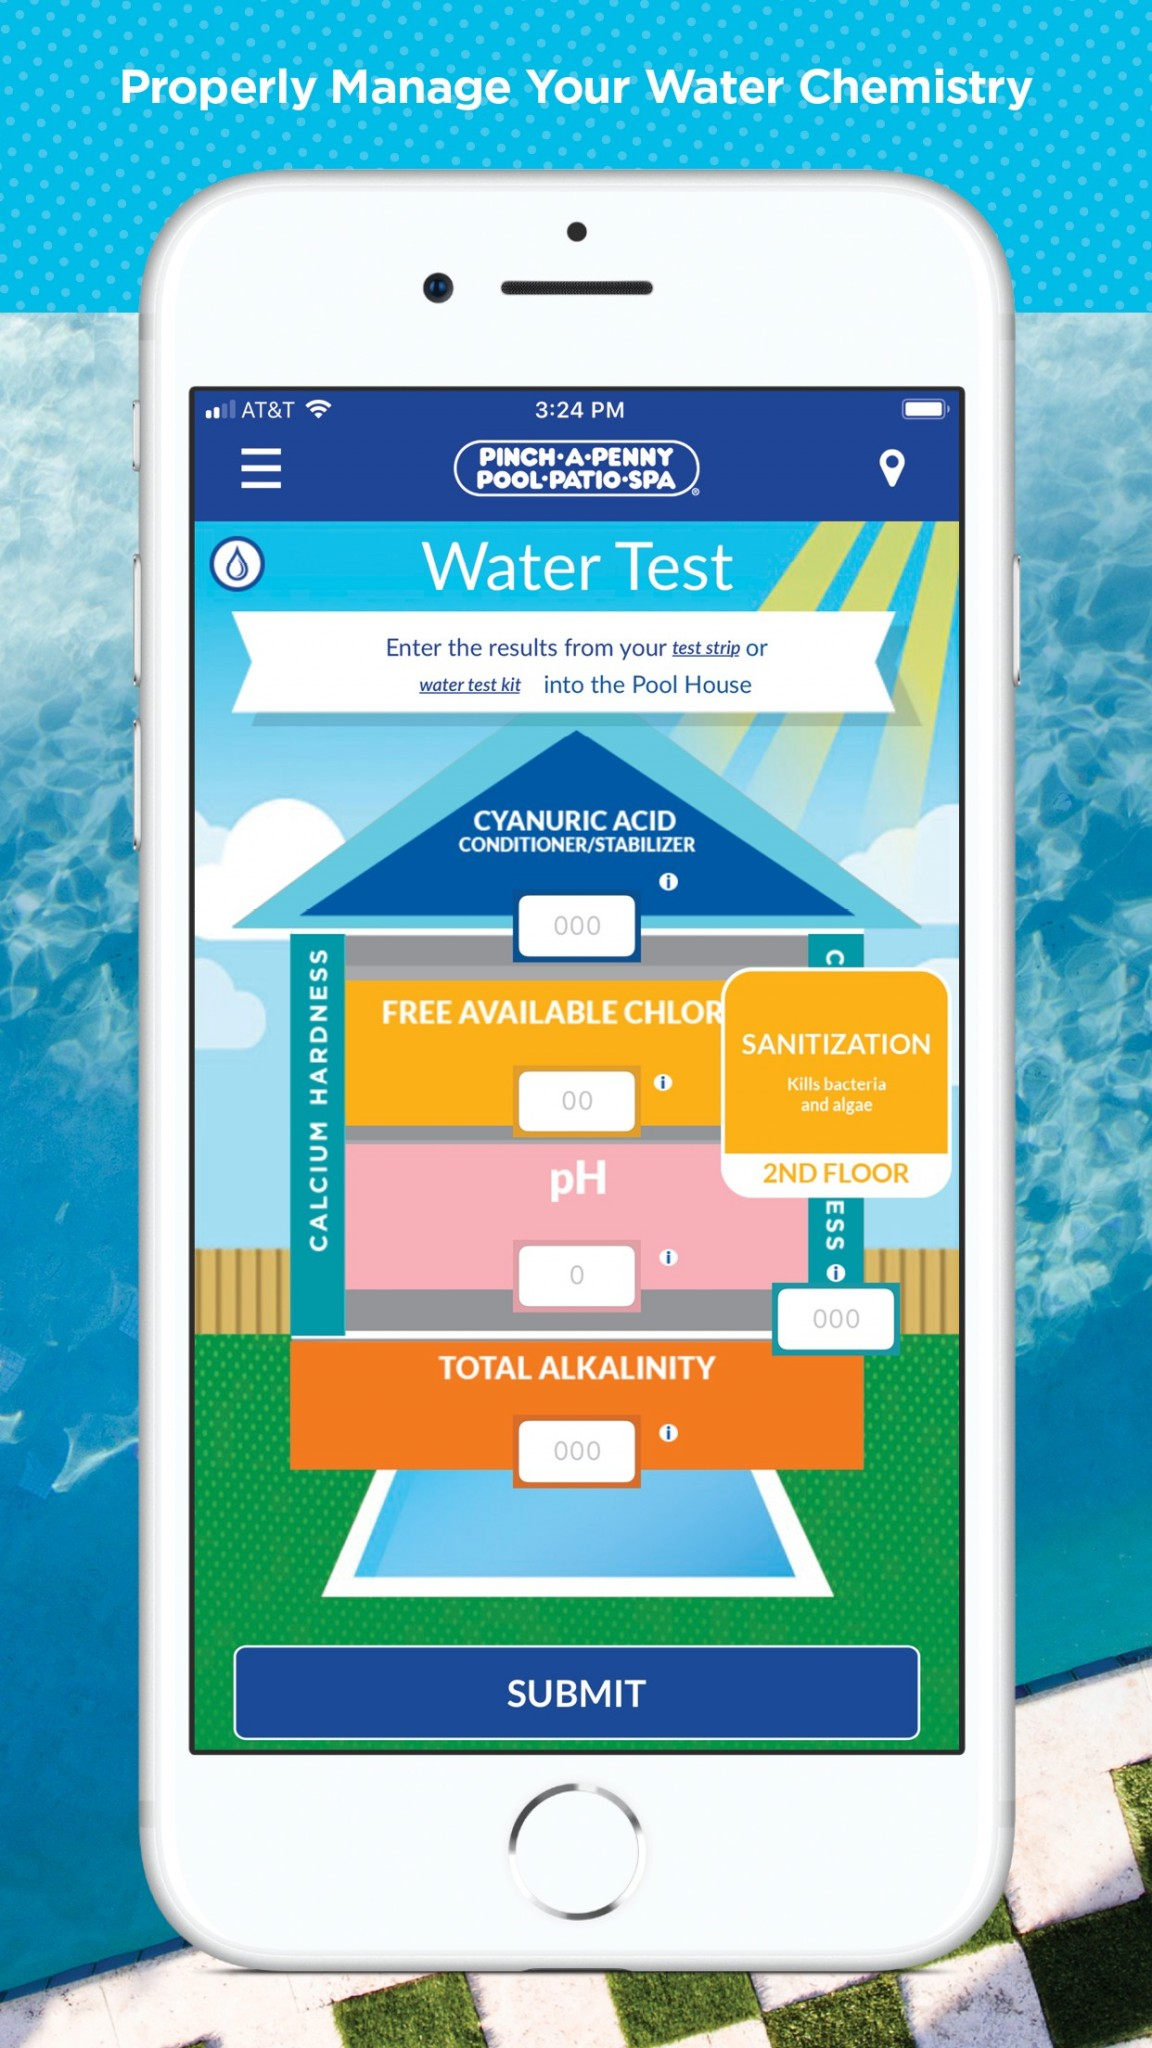 Pinch A Penny Pool Patio Spa's new mobile app - Pool & Spa ...